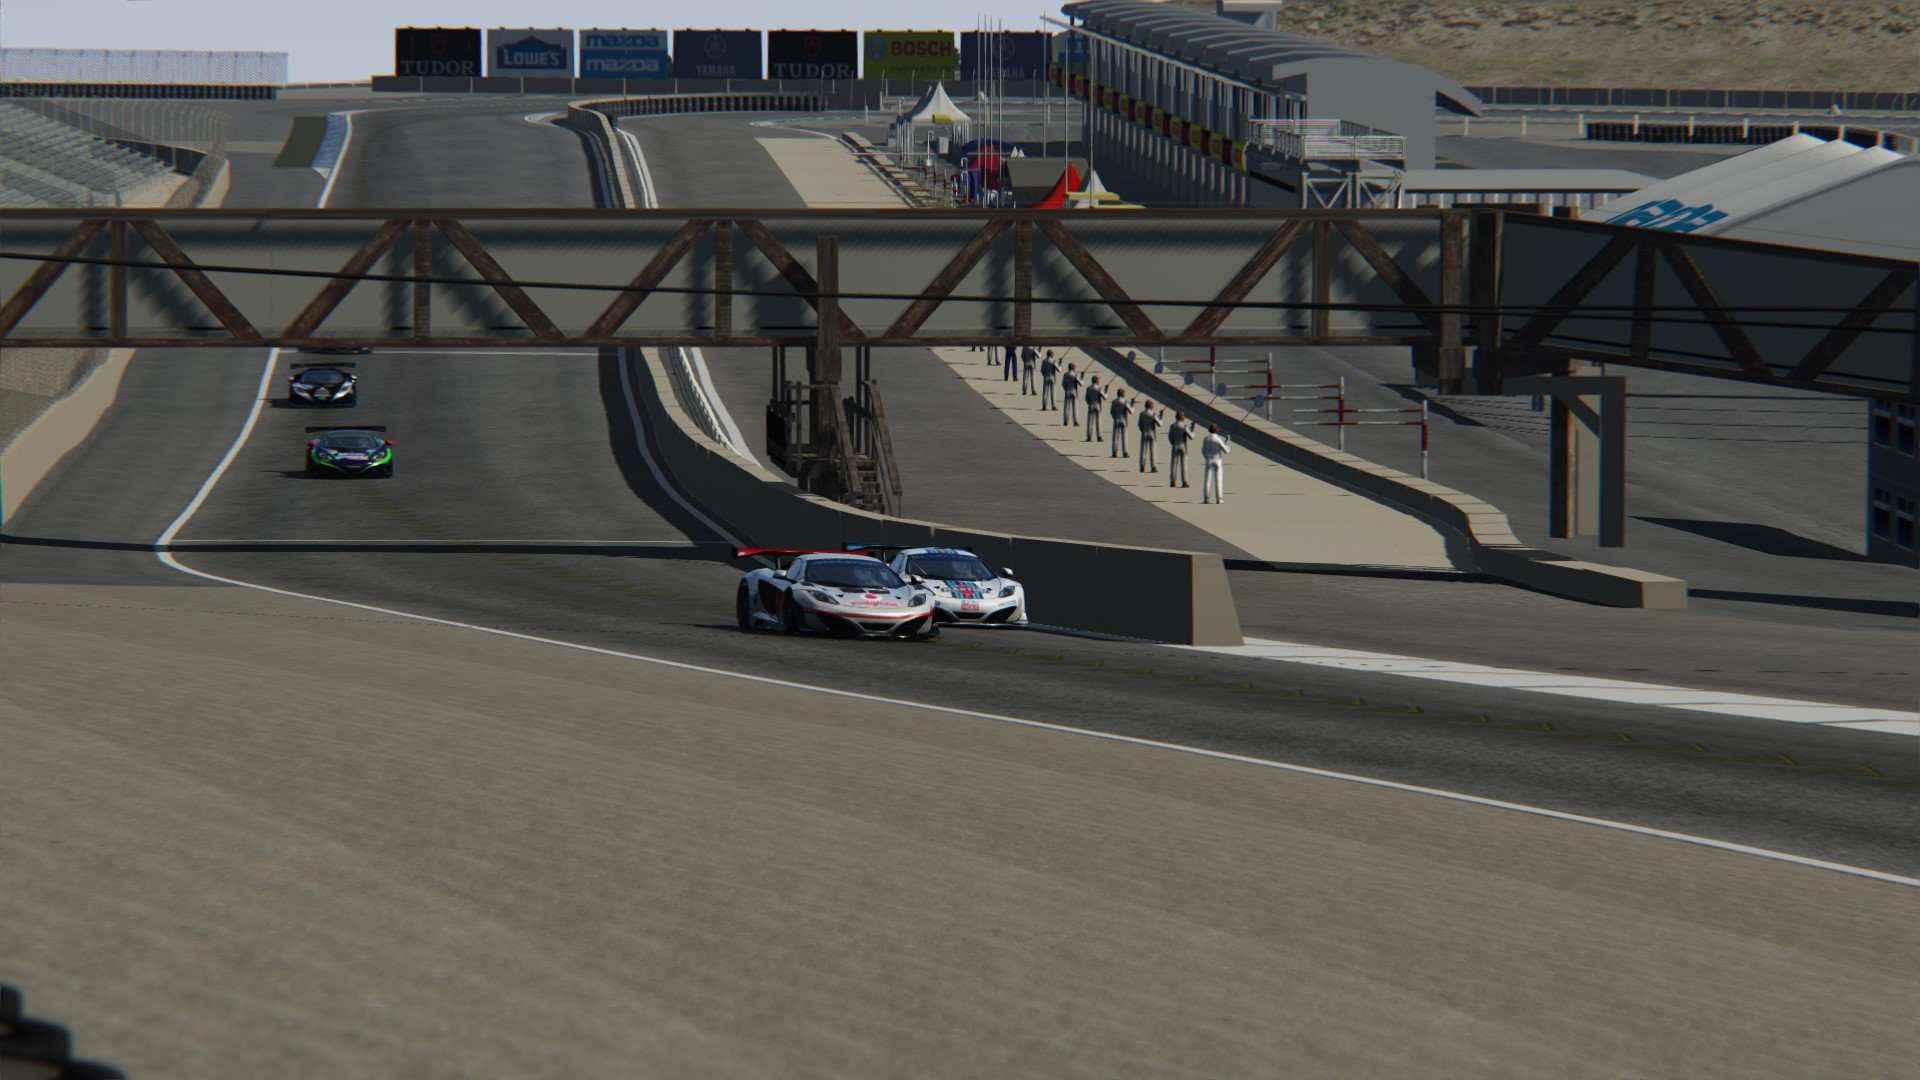 Screenshot_mclaren_mp412c_gt3_bs_lagunaseca_27-5-116-12-37-52.jpg